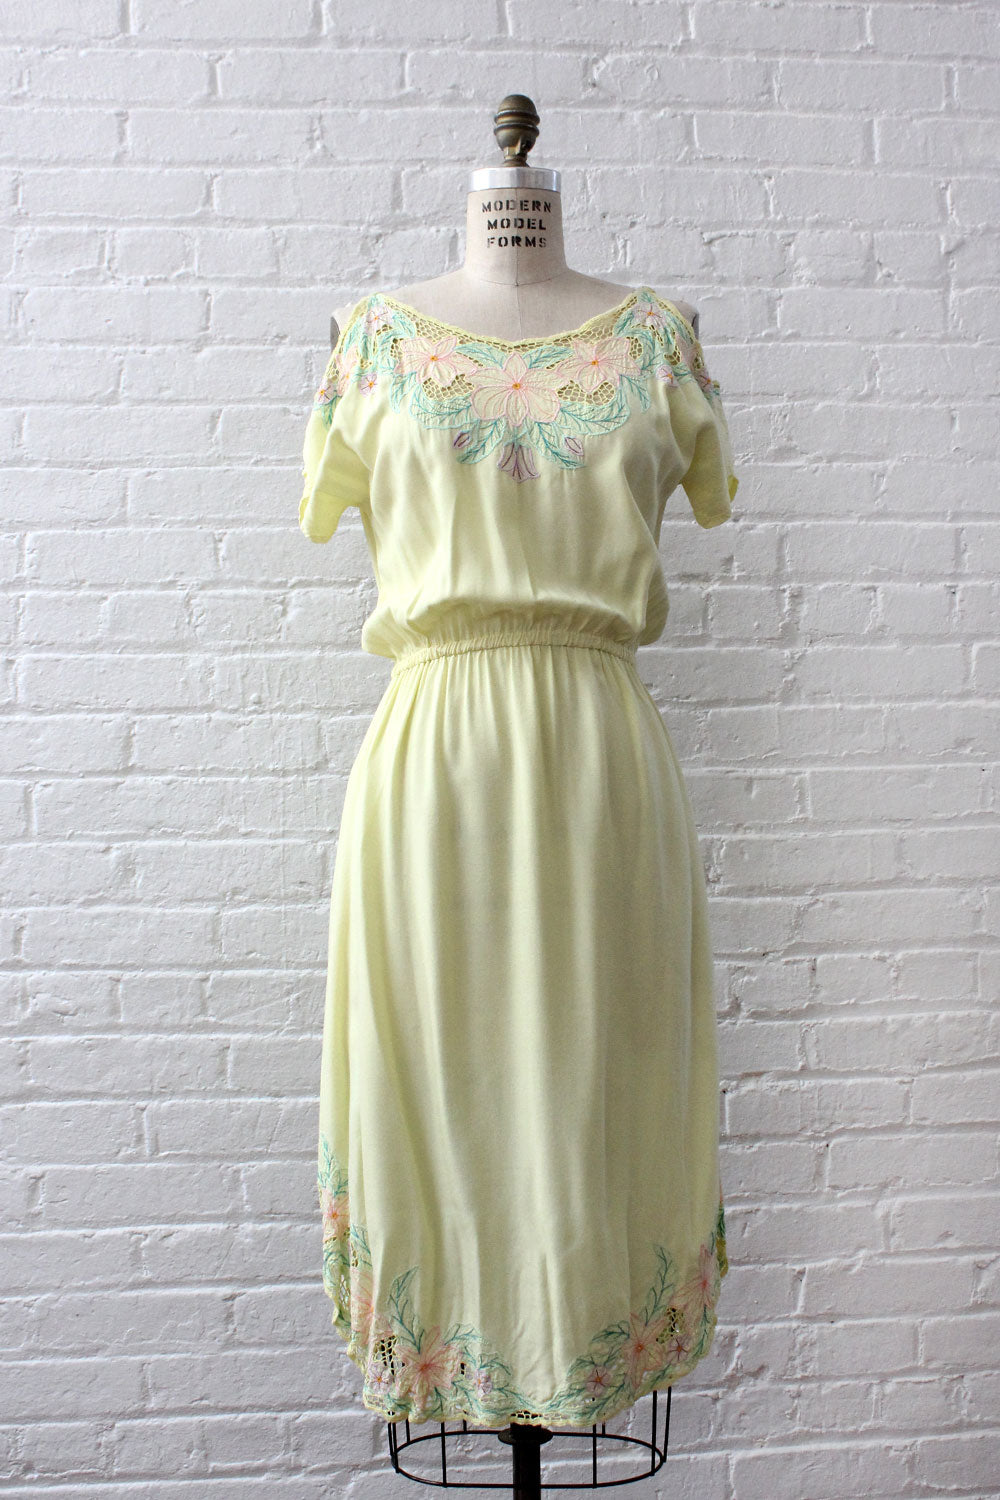 Summer Morning Bali Lace Dress S/M